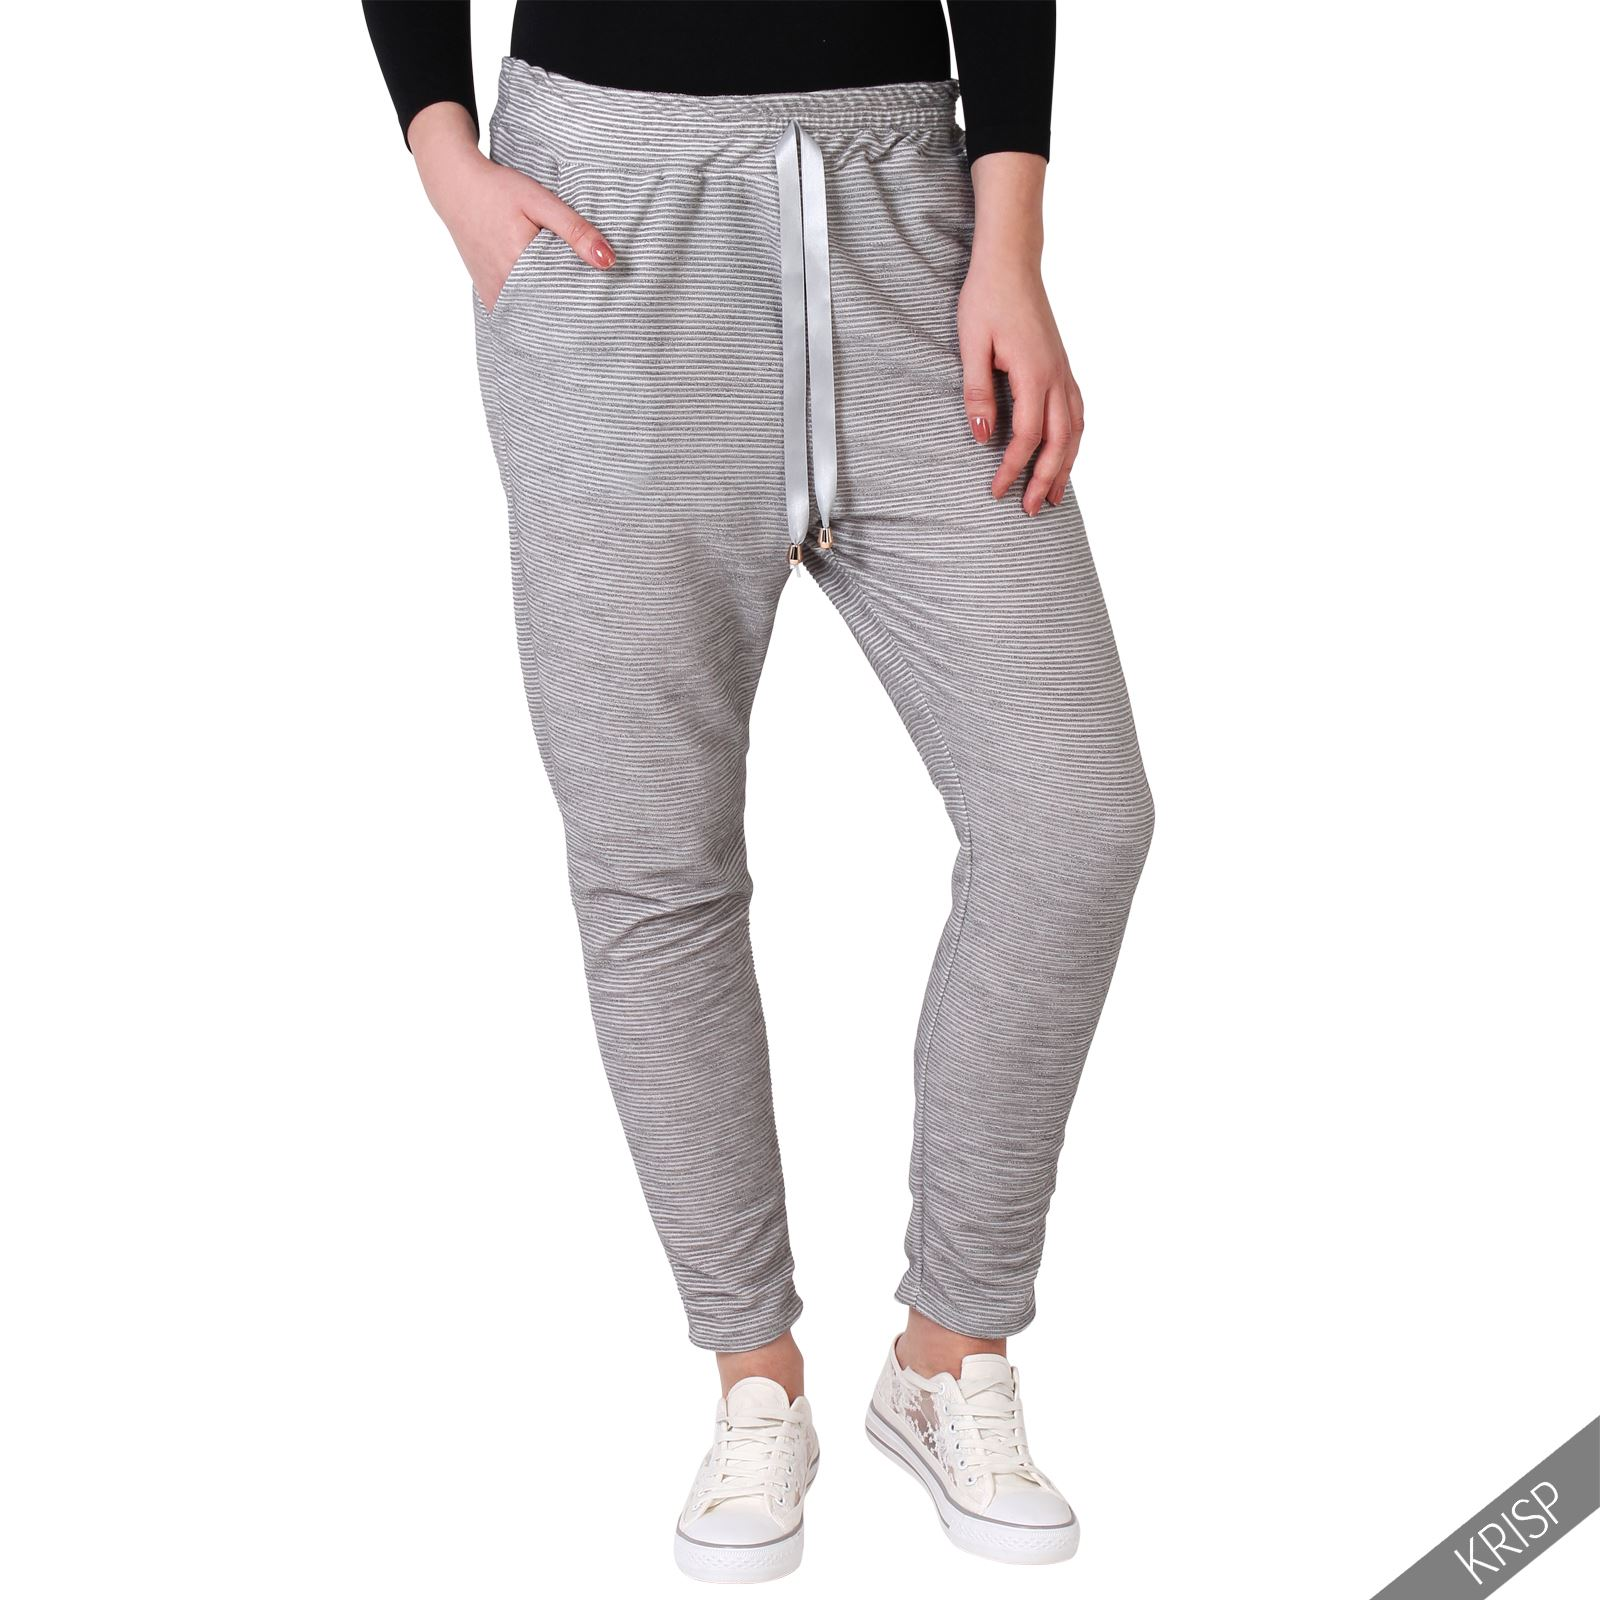 Shop a wide selection of Champion Women's Plus Size Jersey Pants at DICKS Sporting Goods and order online for the finest quality products from the top brands you erawtoir.ga: $